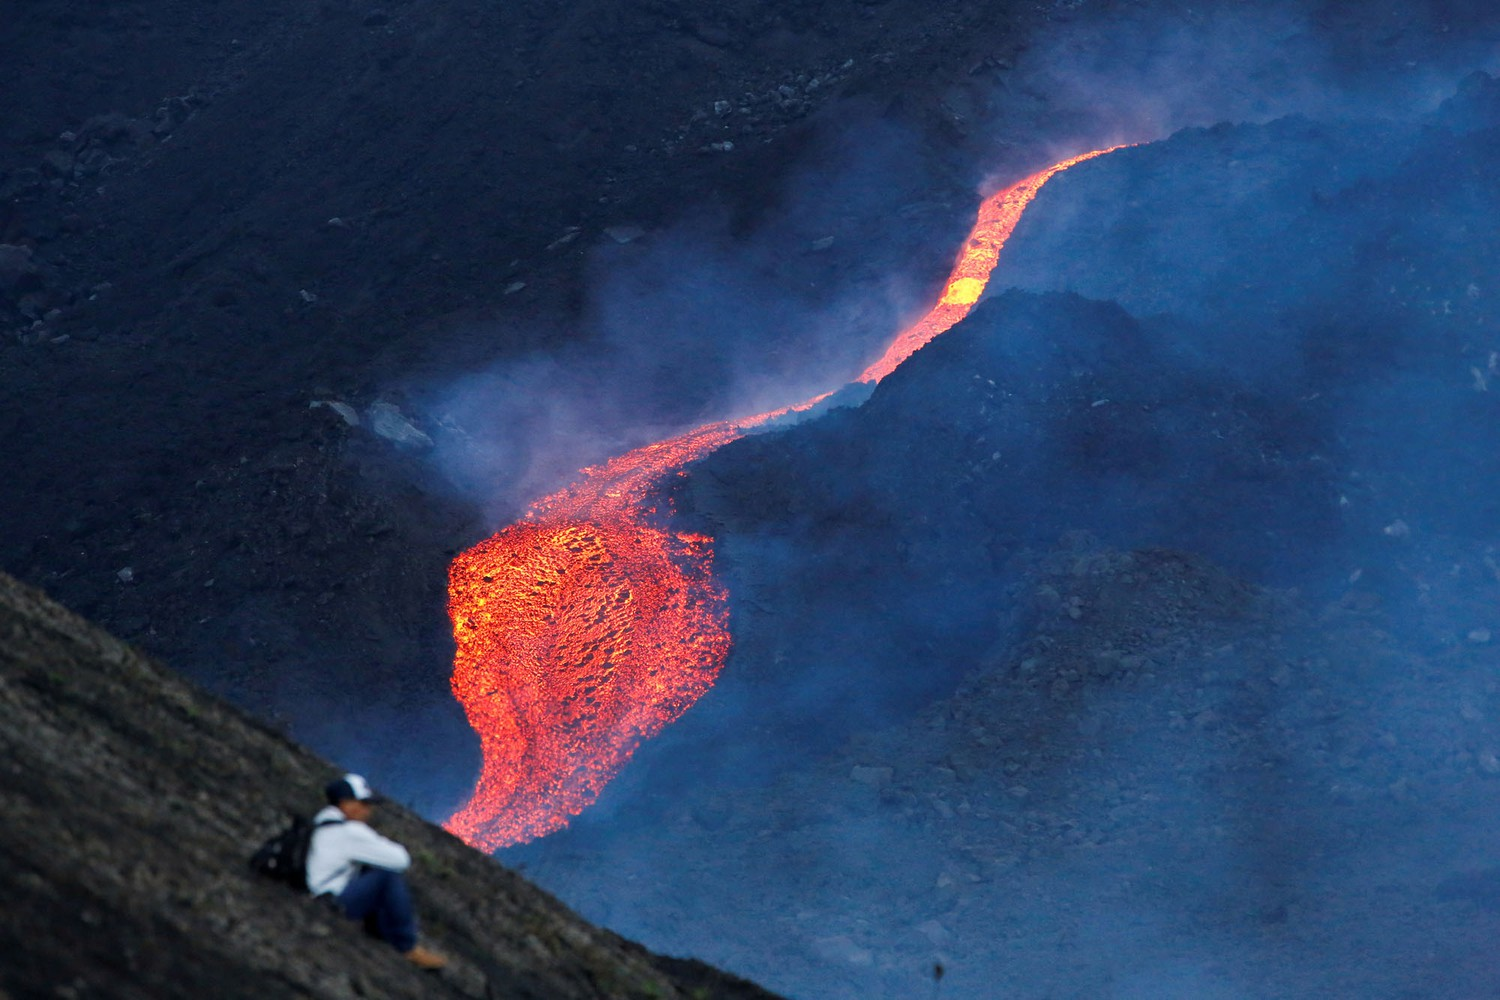 A man watches as red-hot lava flows during an eruption of the Pacaya volcano at San Vicente de Sales municipality in Guatemala's Escuintla region on May 8, 2021.